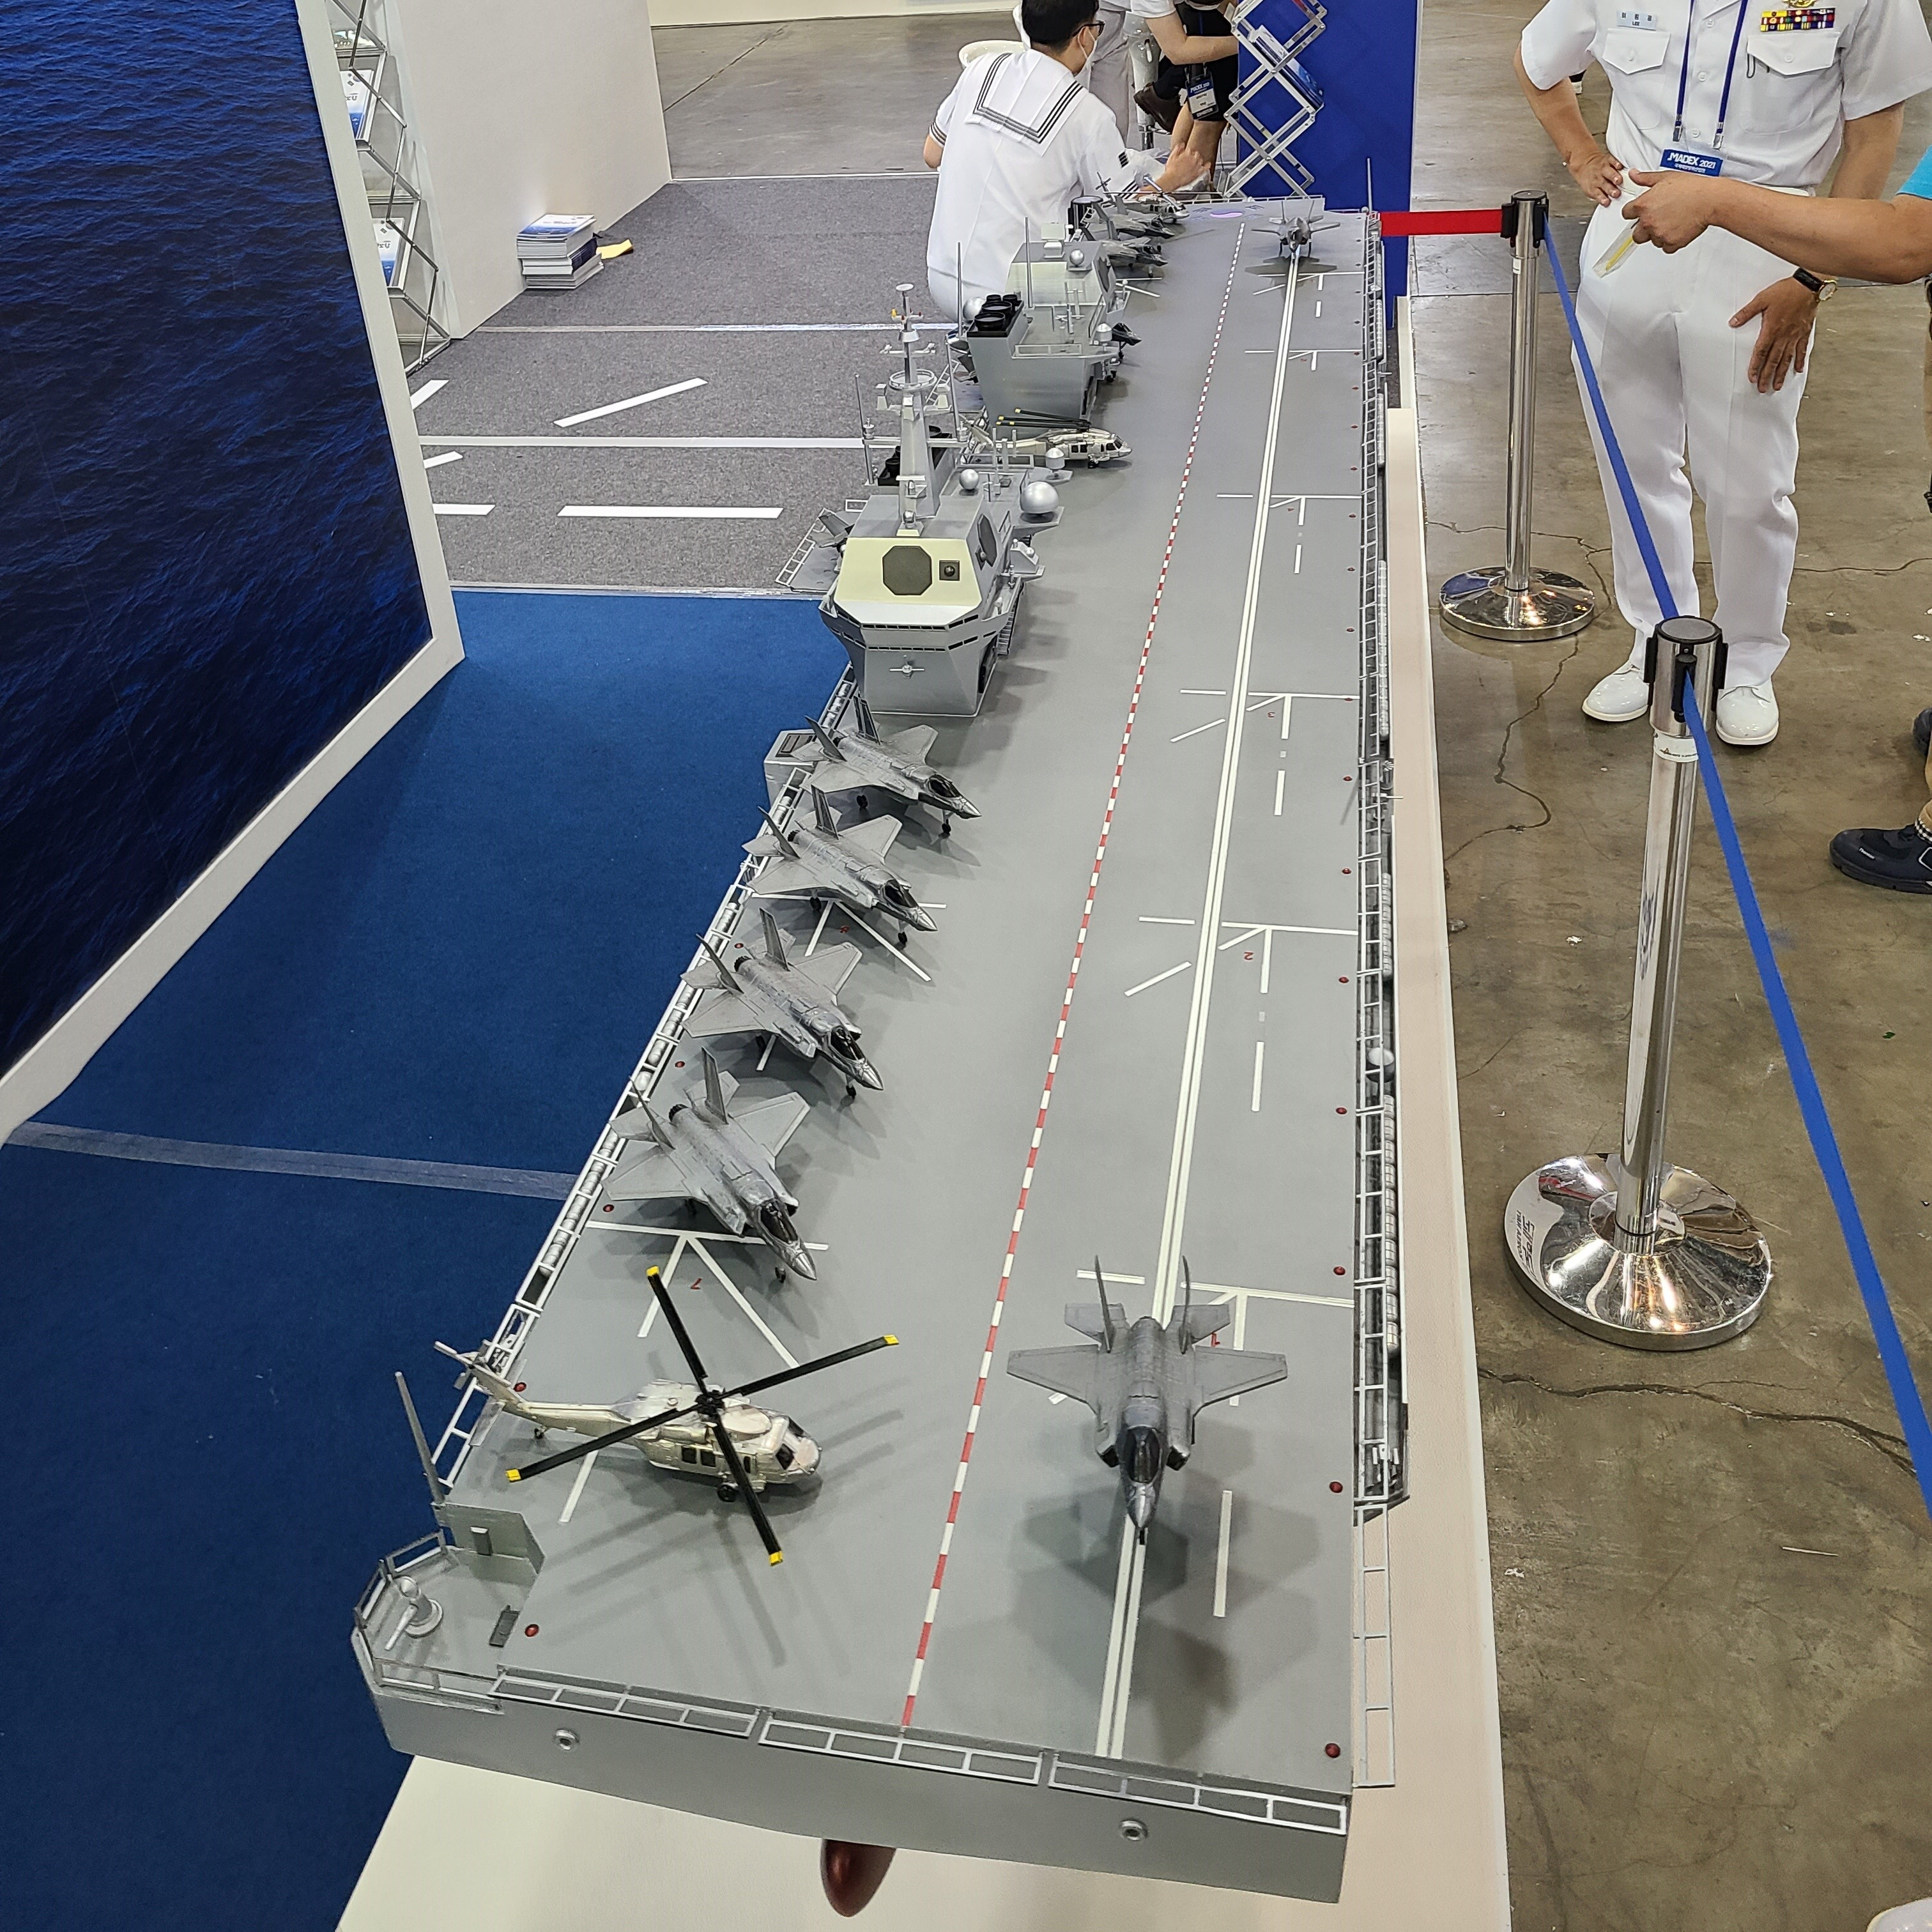 The South Korean Navy displayed an aircraft carrier model at the show. (Brian Kim/Staff)